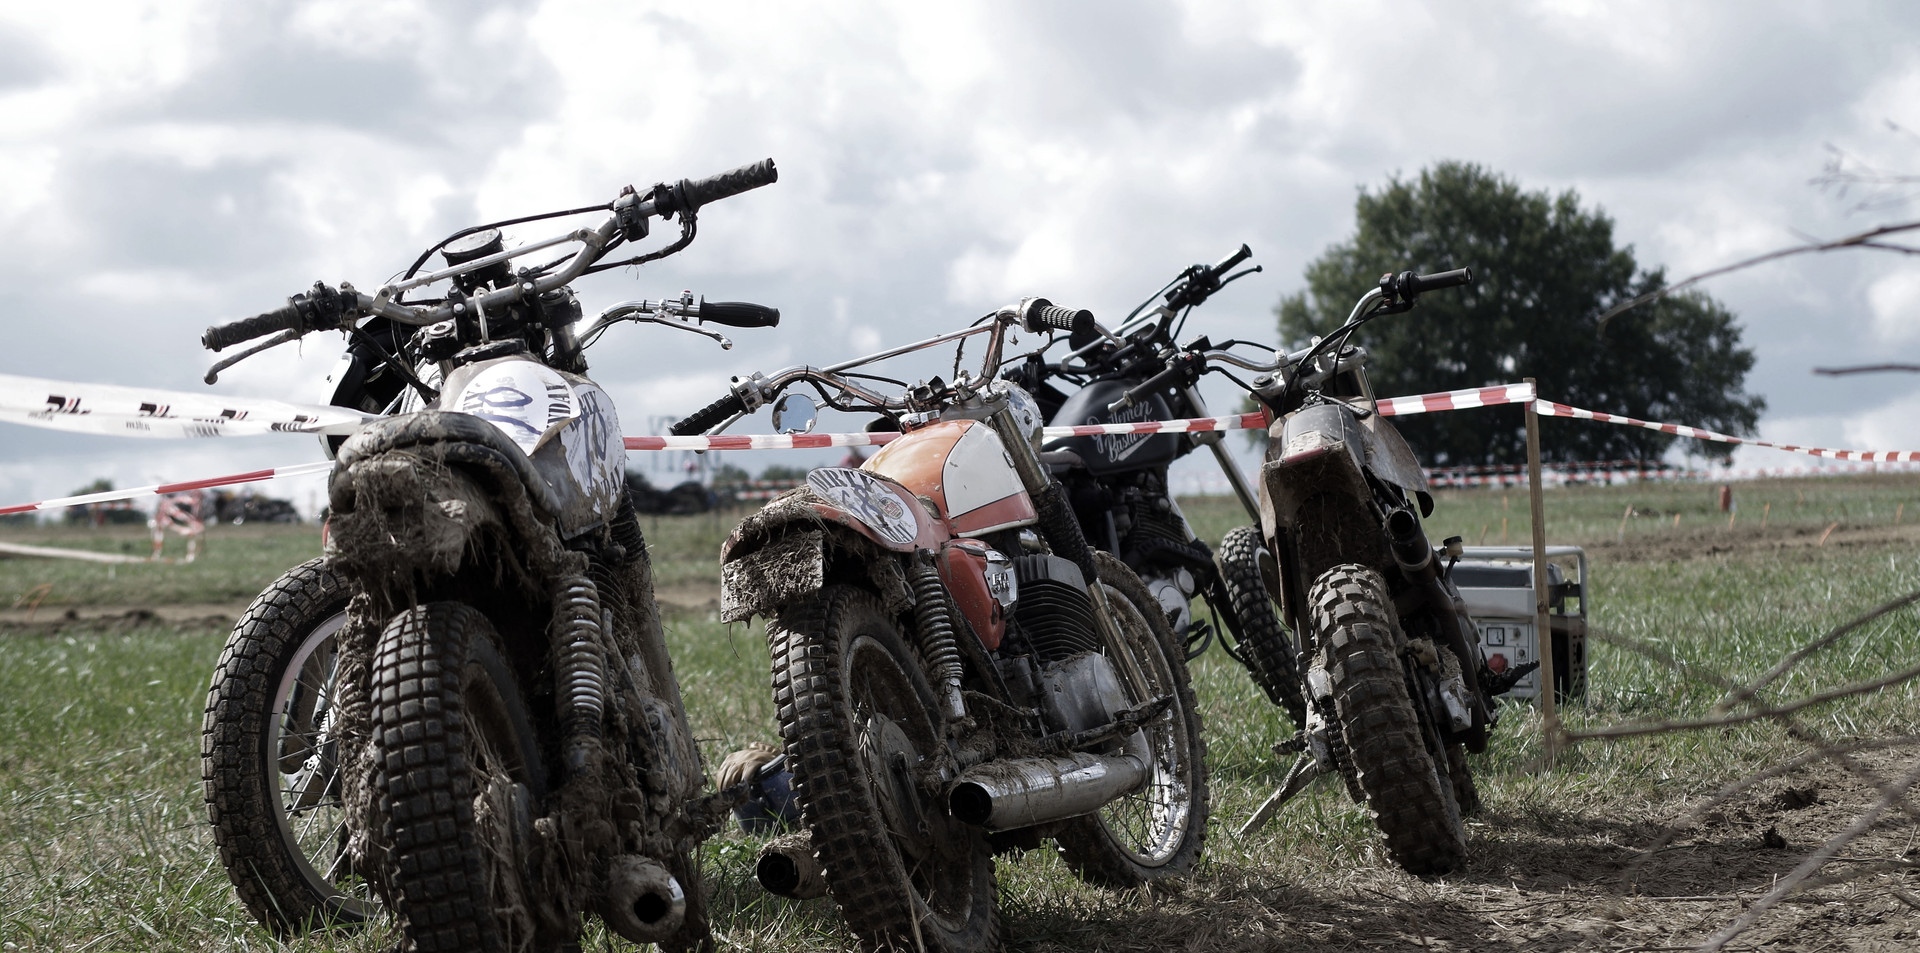 Motos Dirty Sunday